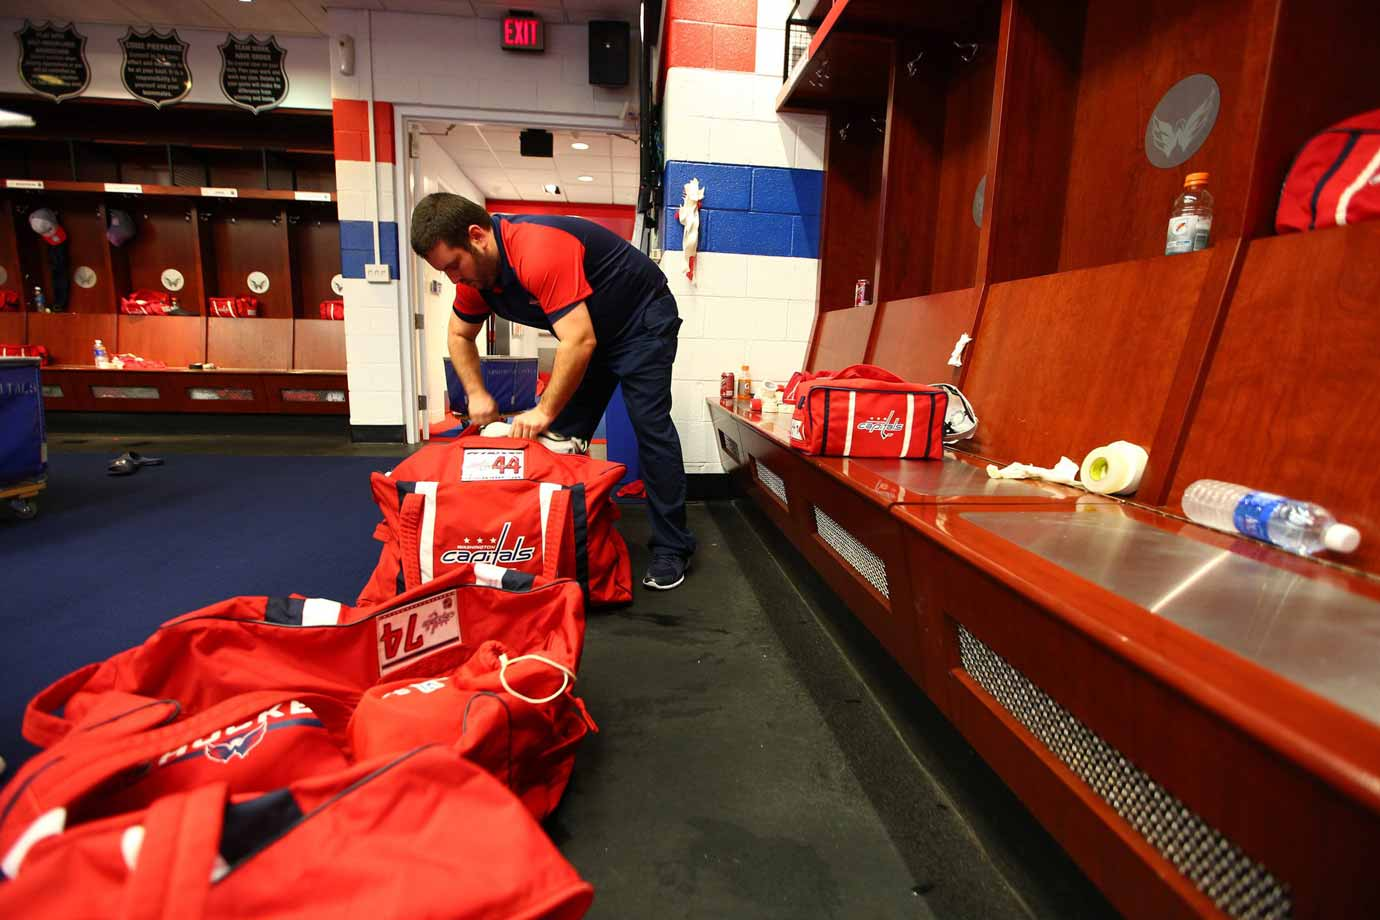 While the players dress and clear out, the Capitals equipment management staff swings into action, packing gear and fresh uniforms for the next night's game in Toronto.